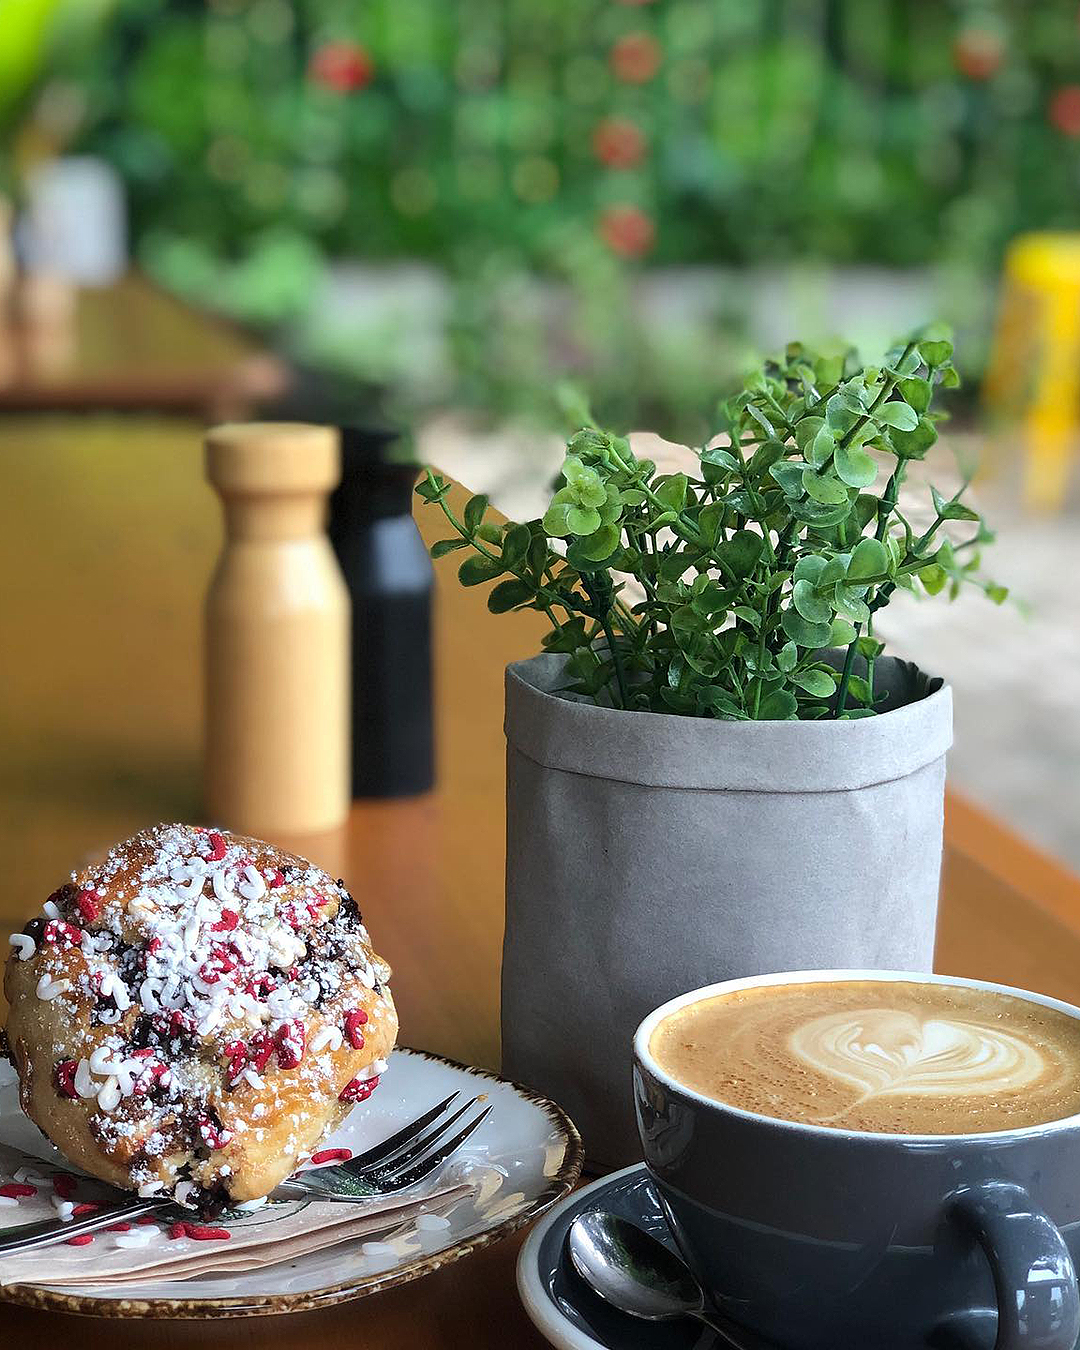 Delightful food and coffee at Cafe Oro